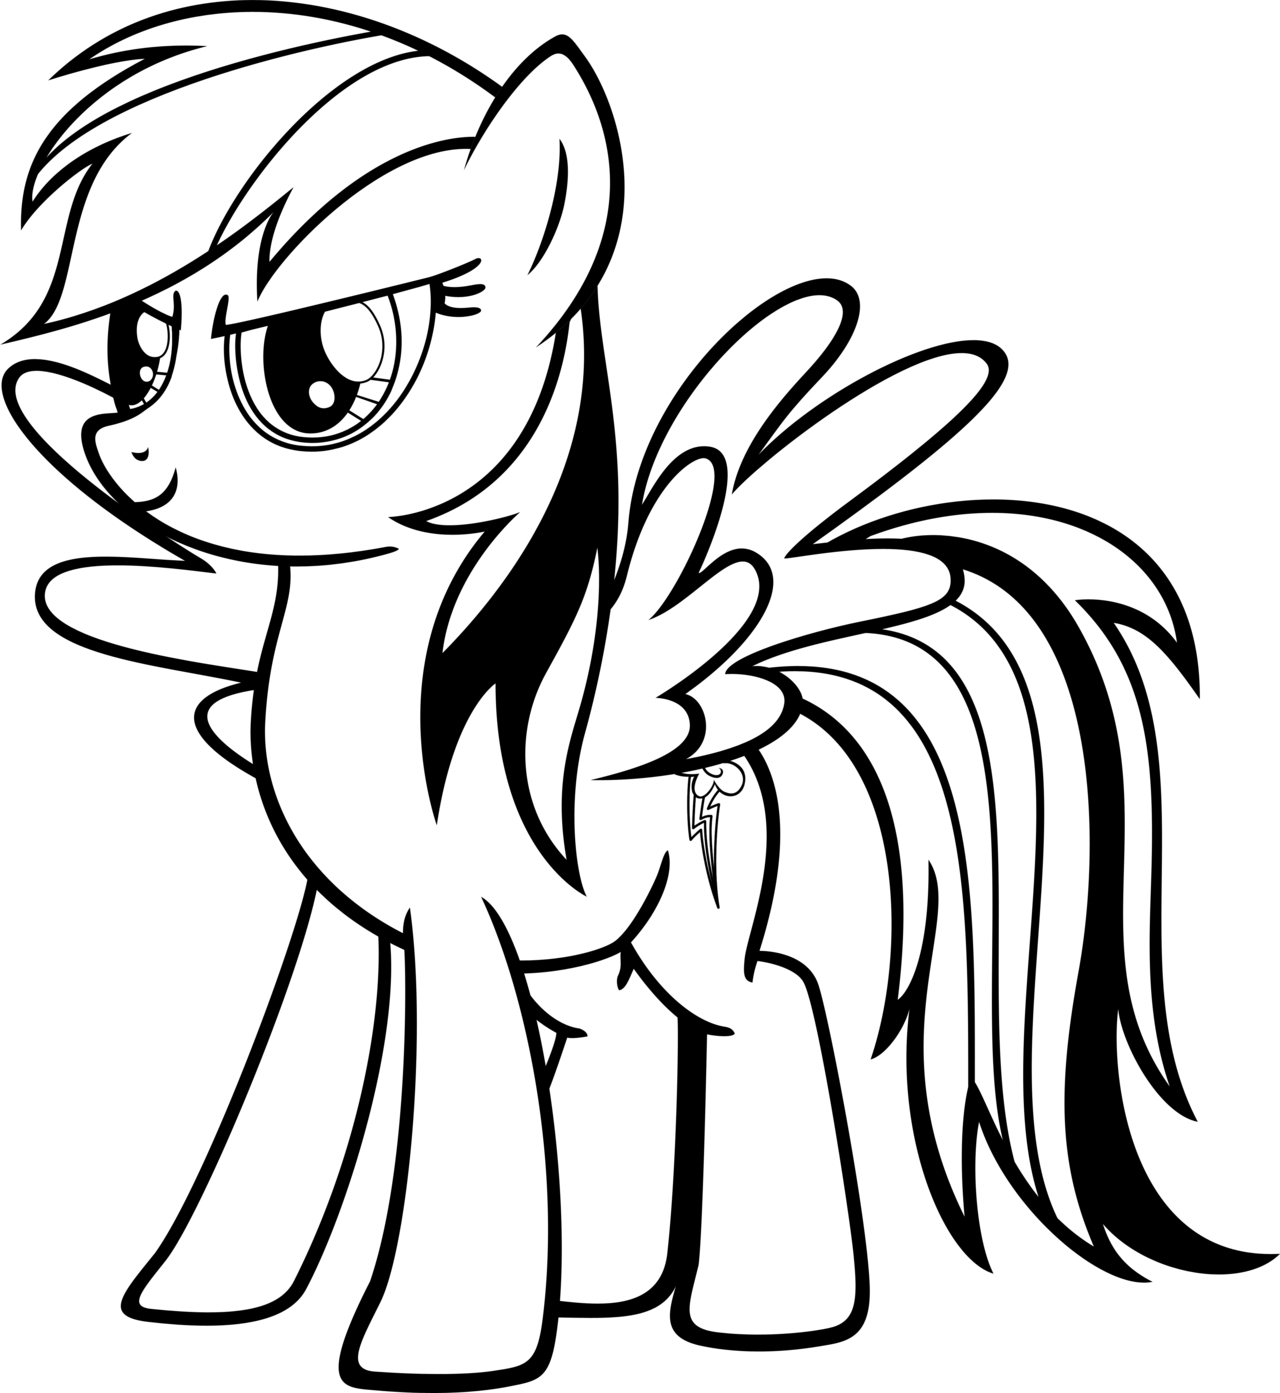 th?id=OIP.vamrVhrg5y pGEGjFDh44gETEs&pid=15.1 moreover my little pony coloring pages of rarity 1 on my little pony coloring pages of rarity also with my little pony coloring pages of rarity 2 on my little pony coloring pages of rarity besides my little pony coloring pages of rarity 3 on my little pony coloring pages of rarity also my little pony coloring pages of rarity 4 on my little pony coloring pages of rarity